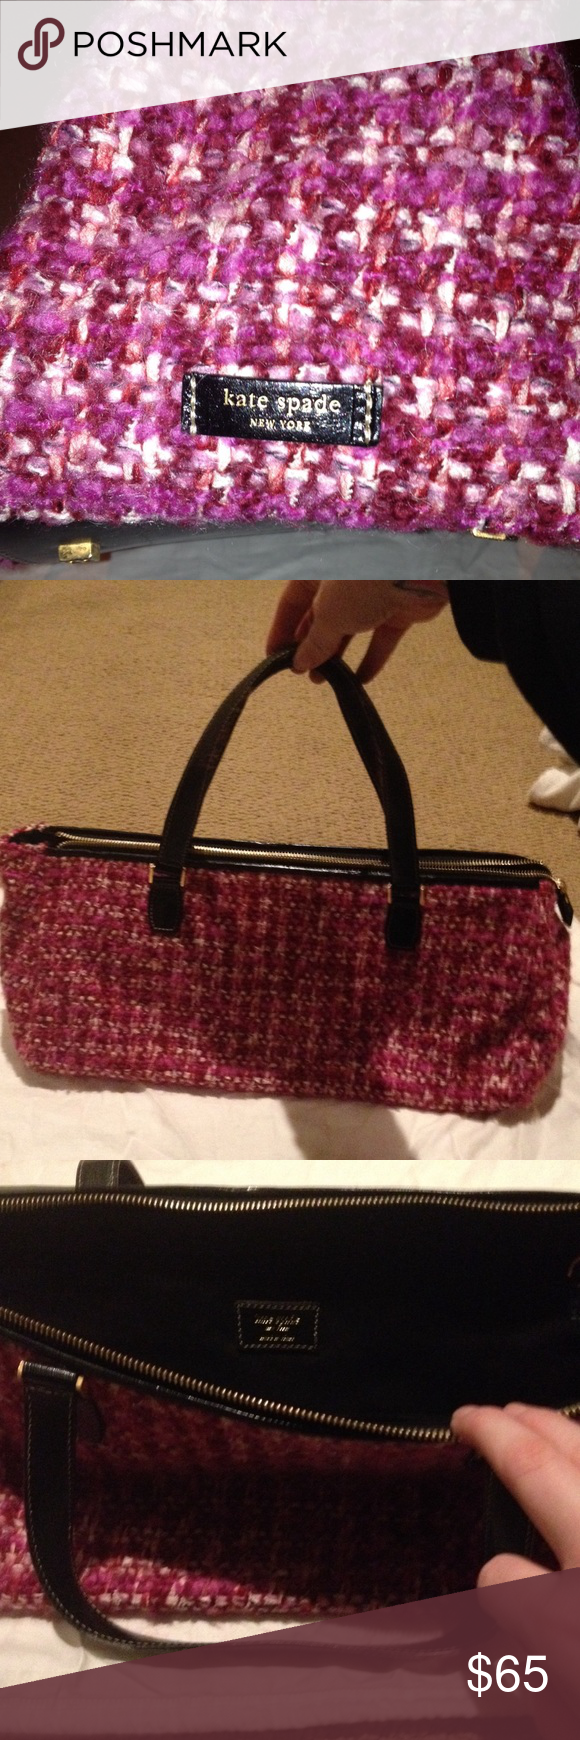 Kate Spade Hangbag Kate Spade HandBag . Knitted design. Includes protective storage back. Has been stored in the bag always. In great condition. kate spade Bags